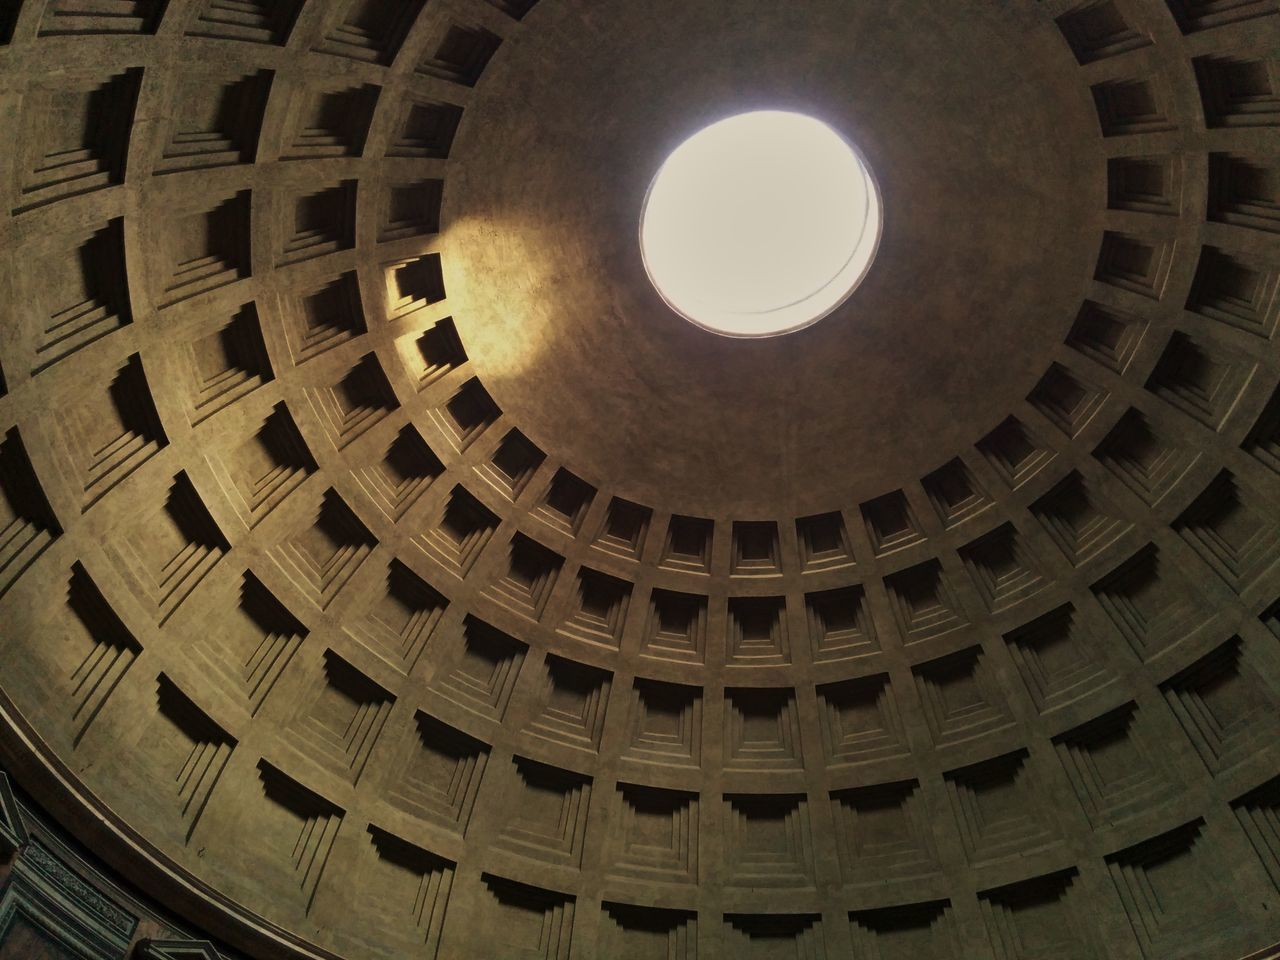 Architecture Architecture Architettura Ceiling Church Dome Historic Hole Hole Of Light Light Hole Low Angle View Monumenti Monuments Phanteon Religion Rome Spirituality Structure